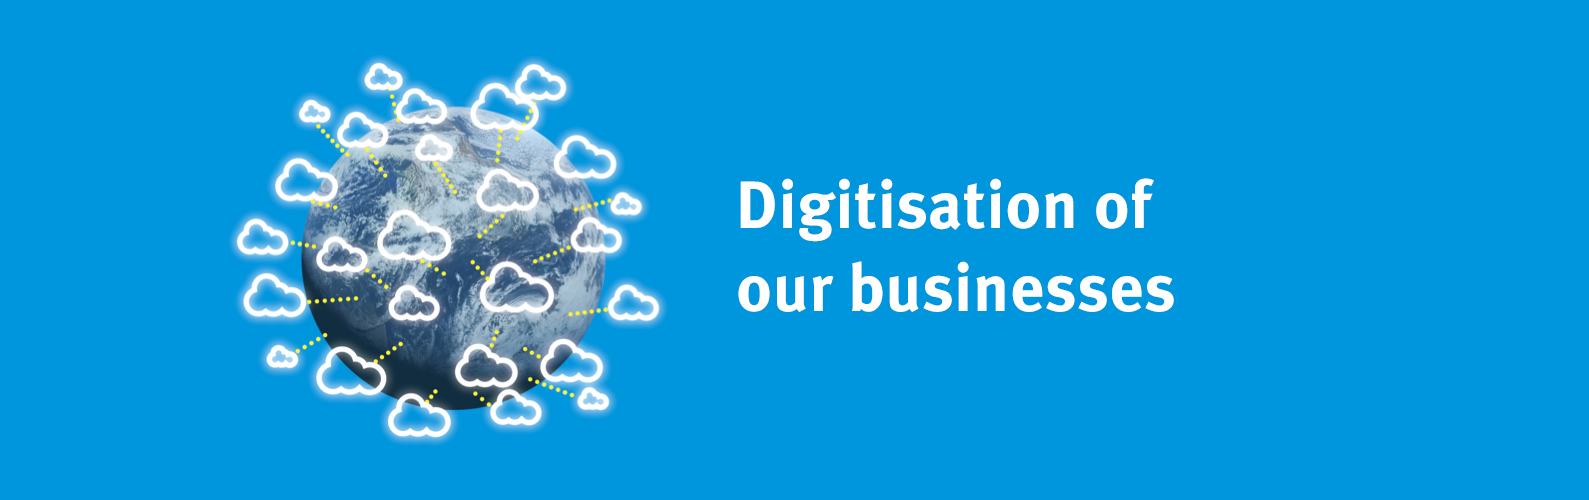 digitisation of our businesses